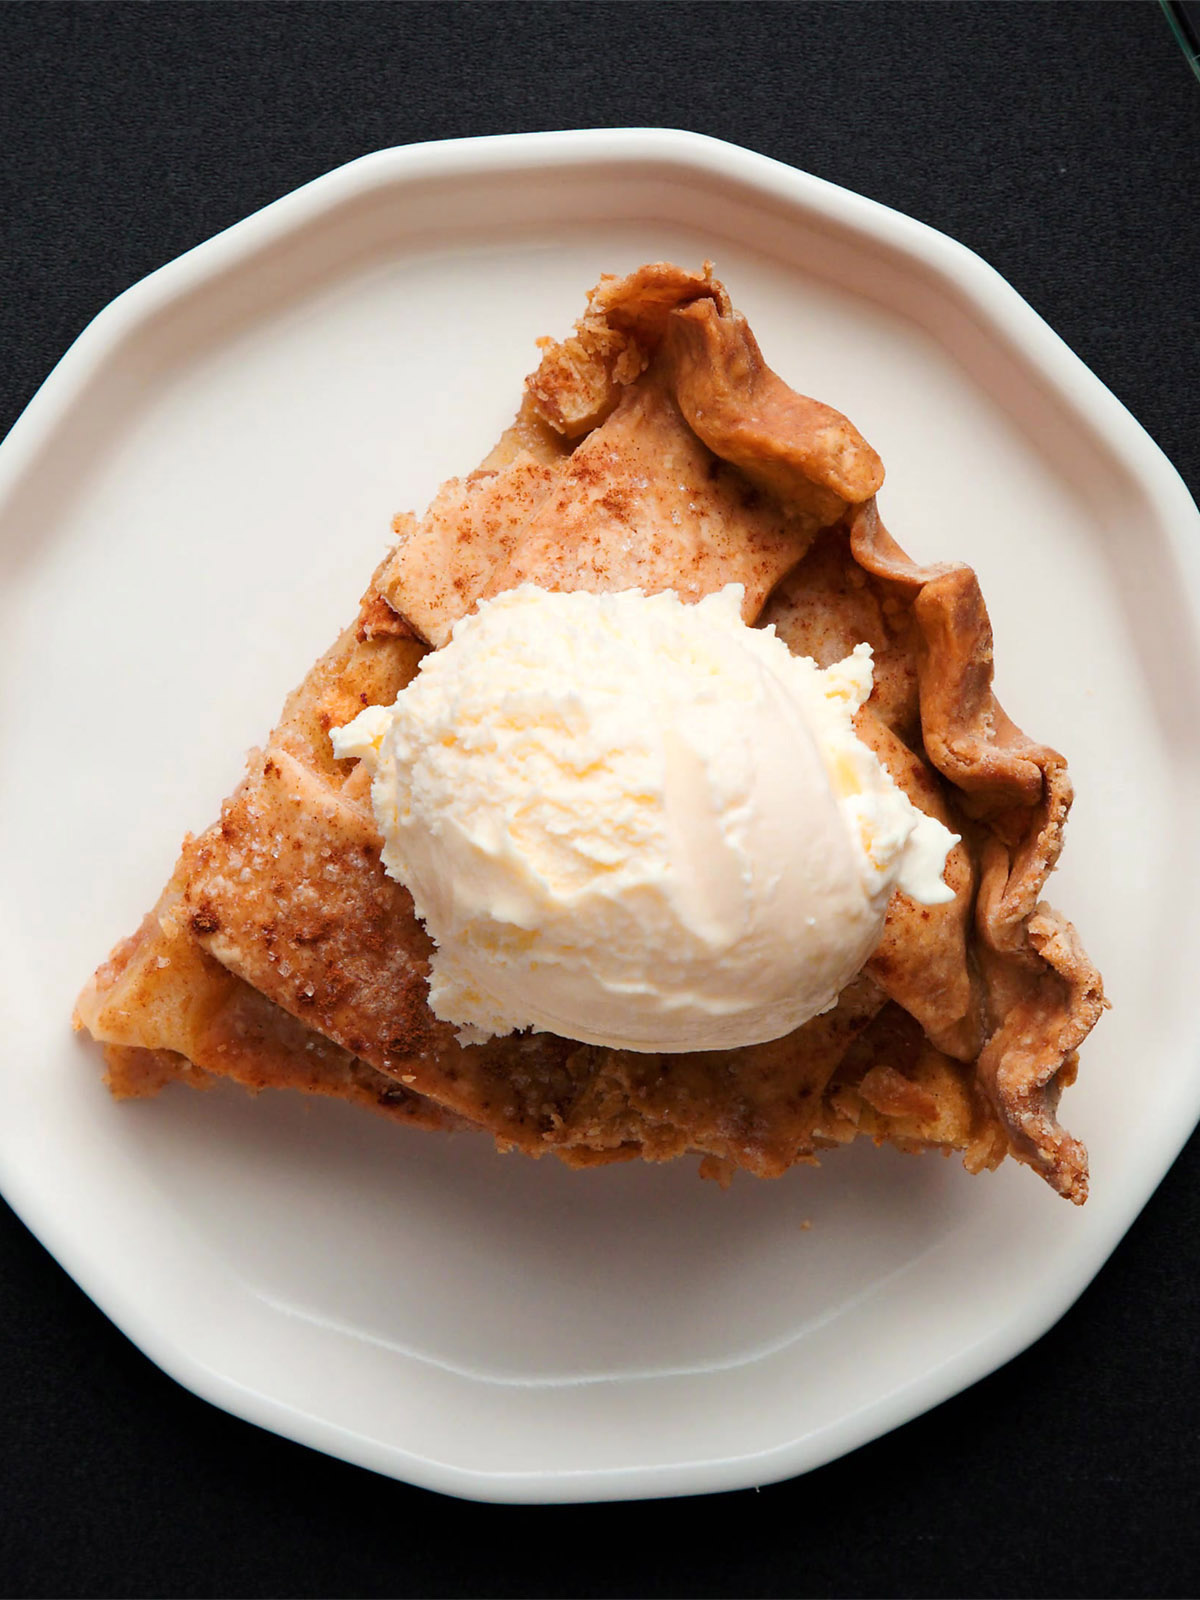 an apple pie wedge slice topped with vanilla ice cream on an off-white plate